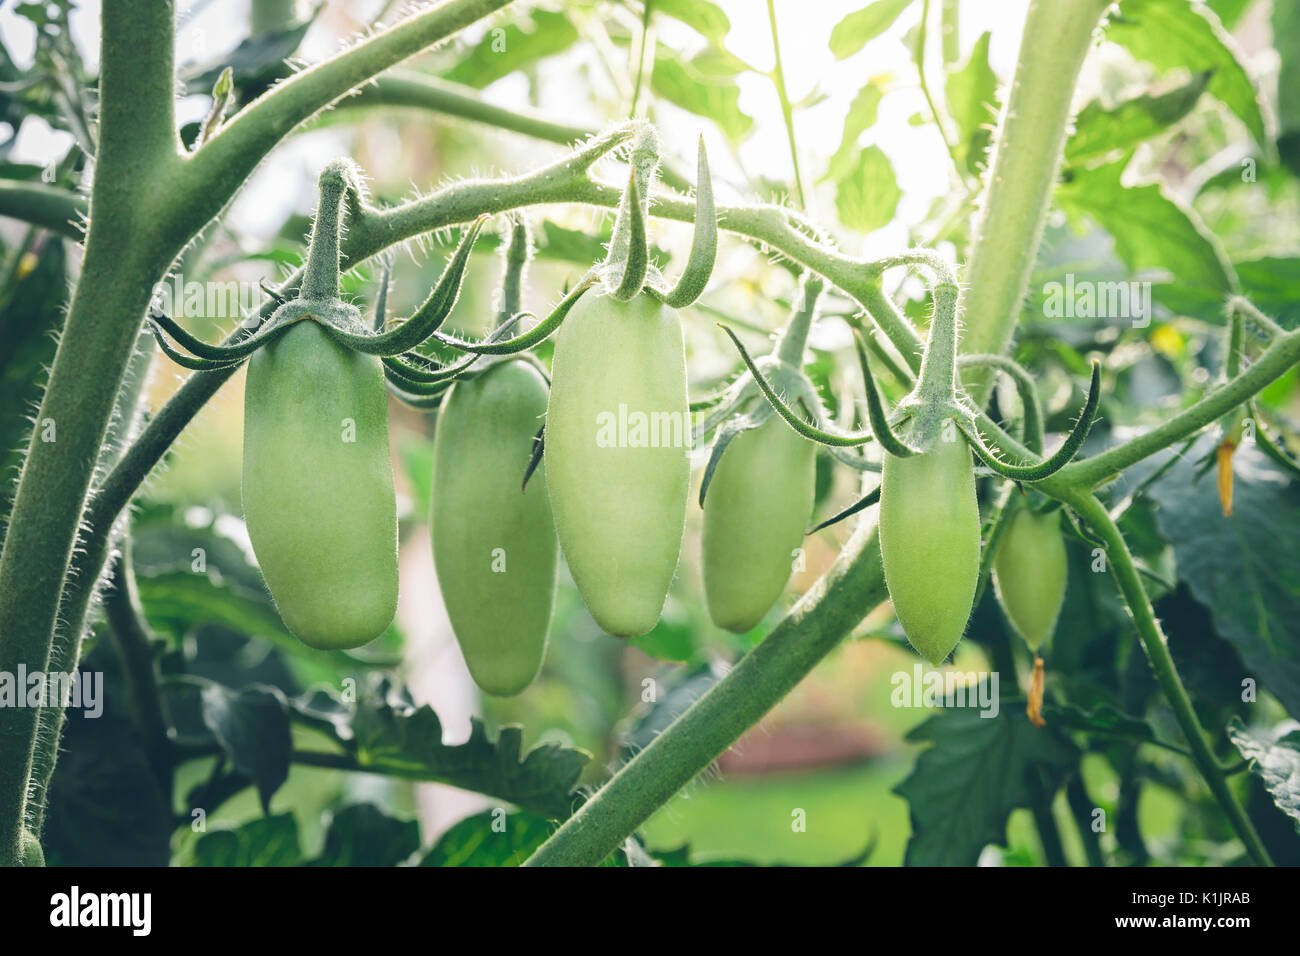 San Marzano tomatoes, unripe and with sun flare in the background. - Stock Image